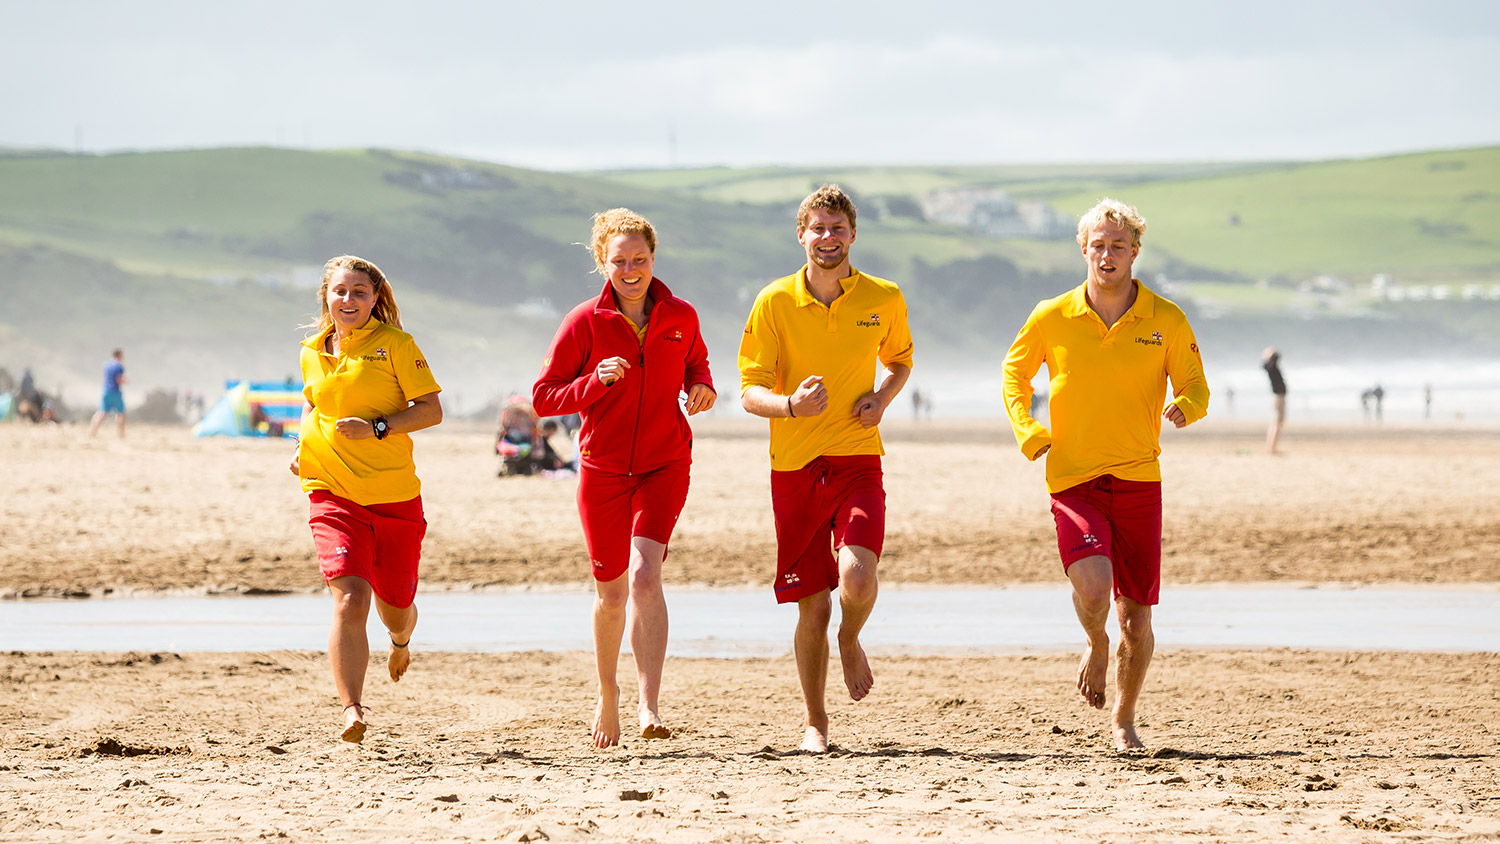 Four RNLI lifeguards running along the beach towards the camera on a sunny day